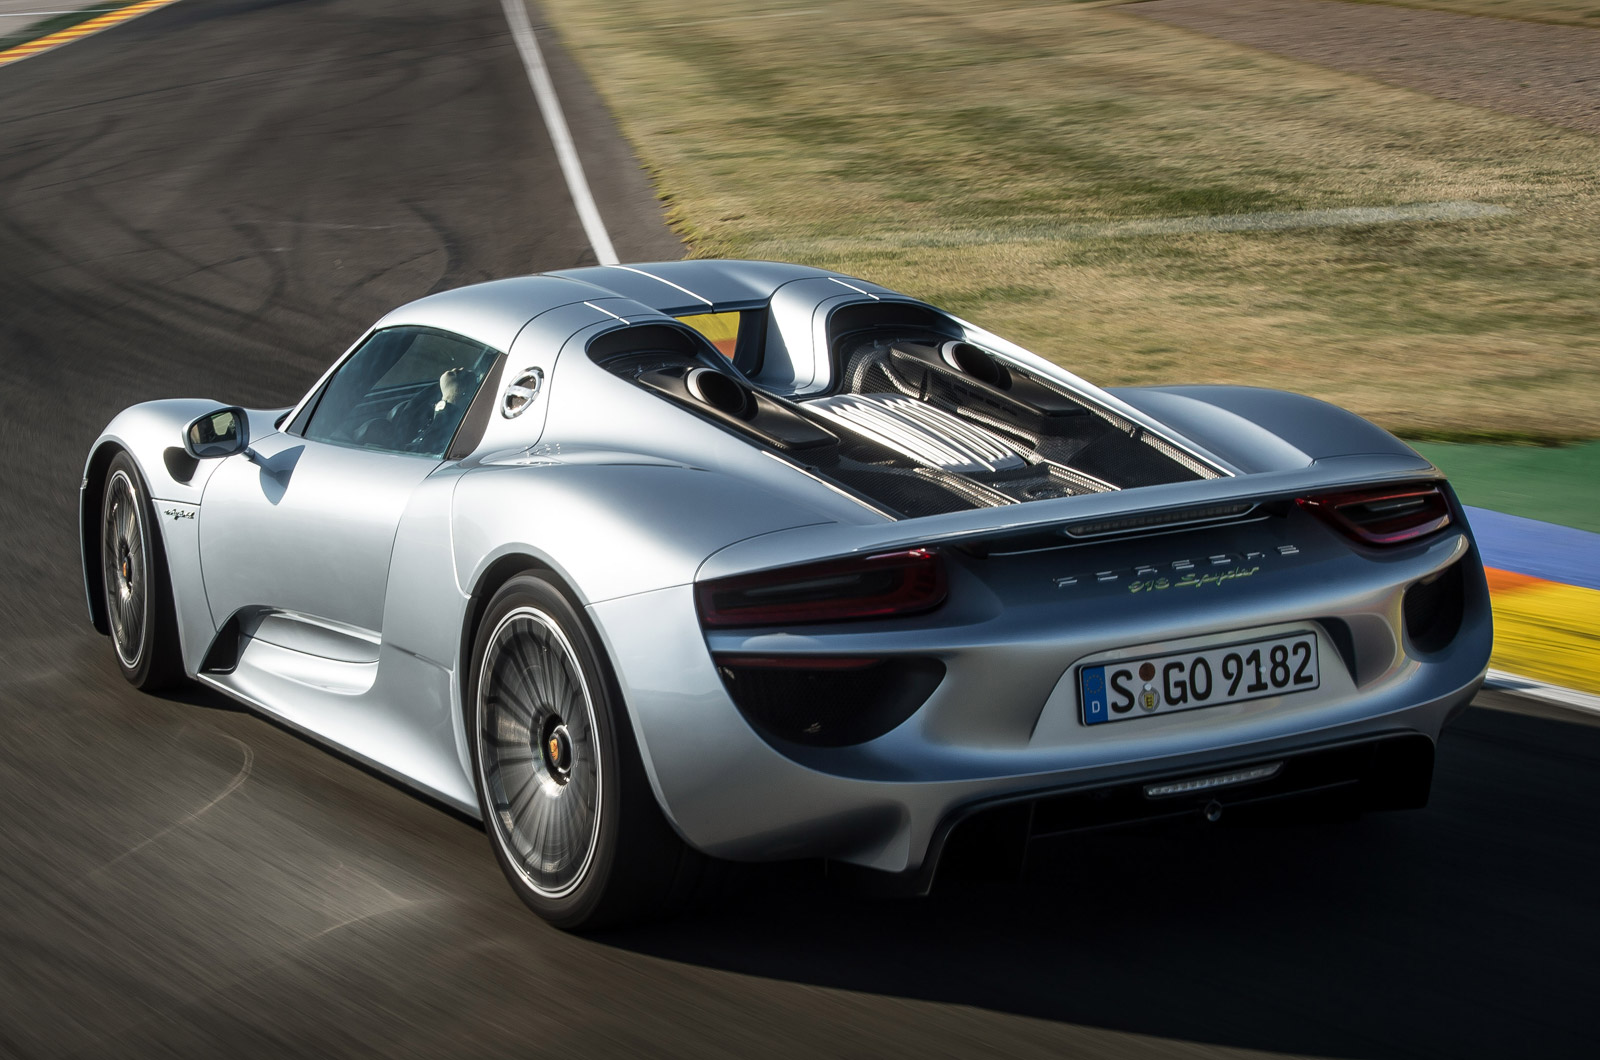 the rear engined 918 spyder has a top speed of 215mph. Black Bedroom Furniture Sets. Home Design Ideas